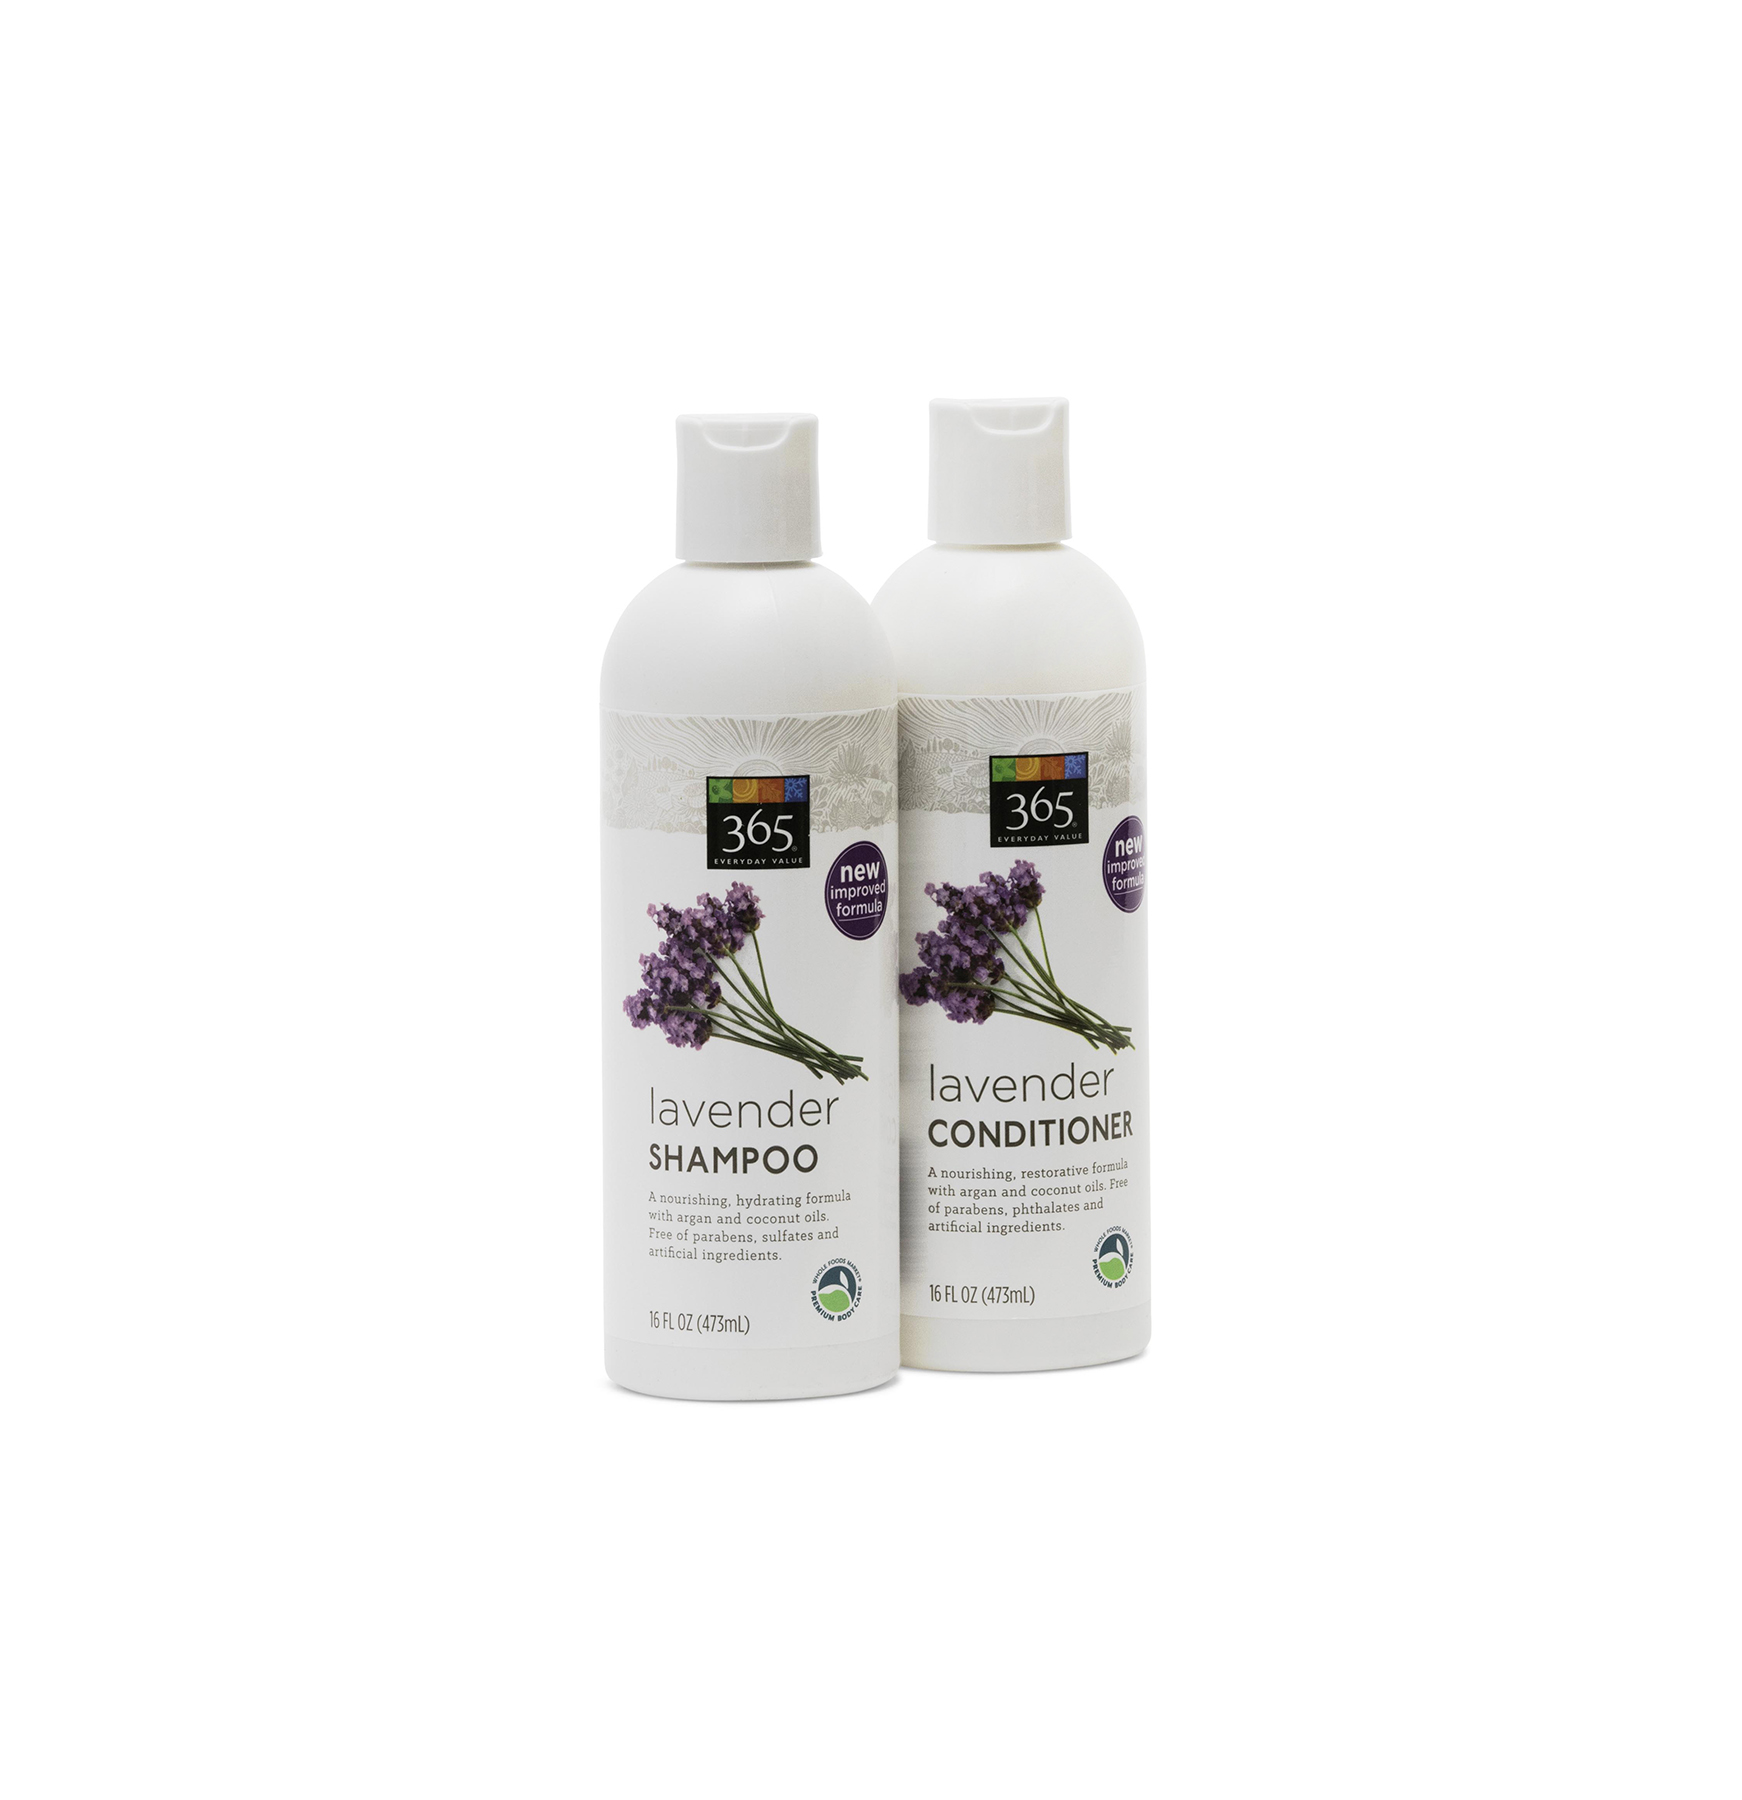 Whole Foods 365 Lavender Shampoo and Conditioner